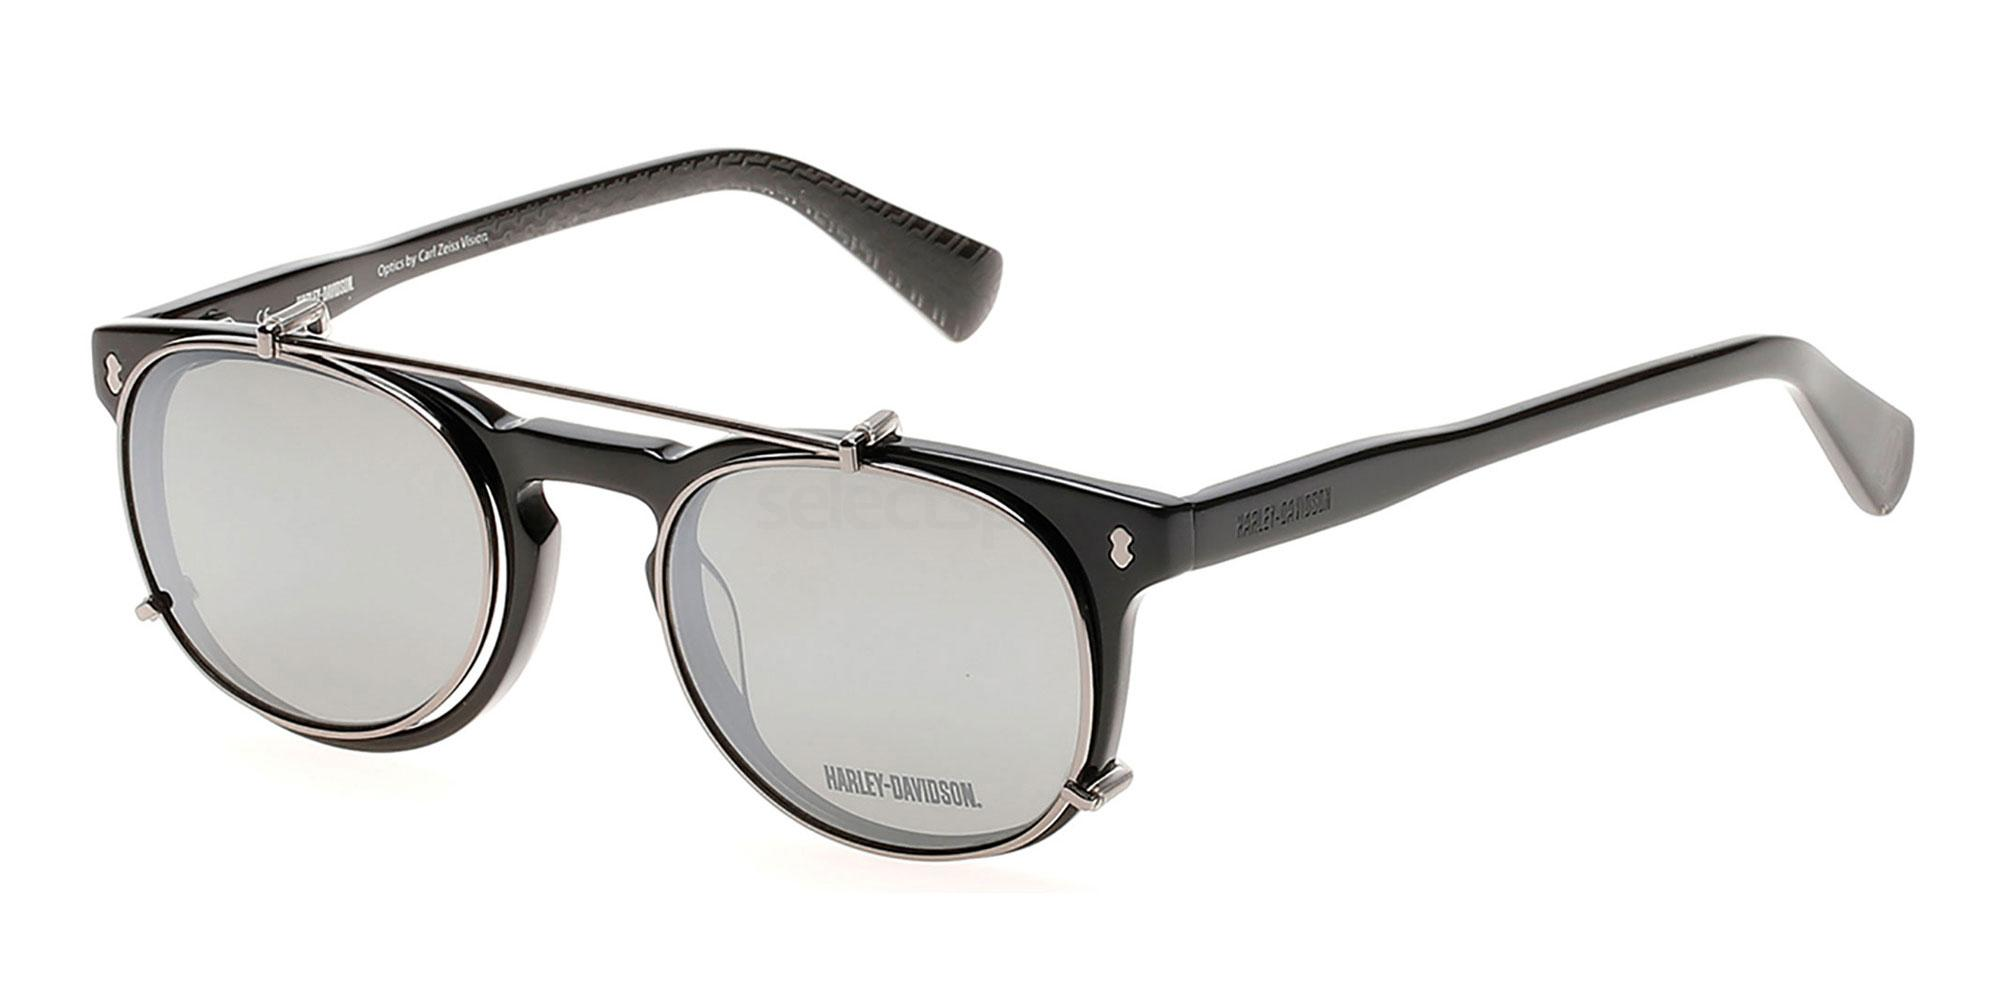 01C HD 1006 Glasses, Harley Davidson